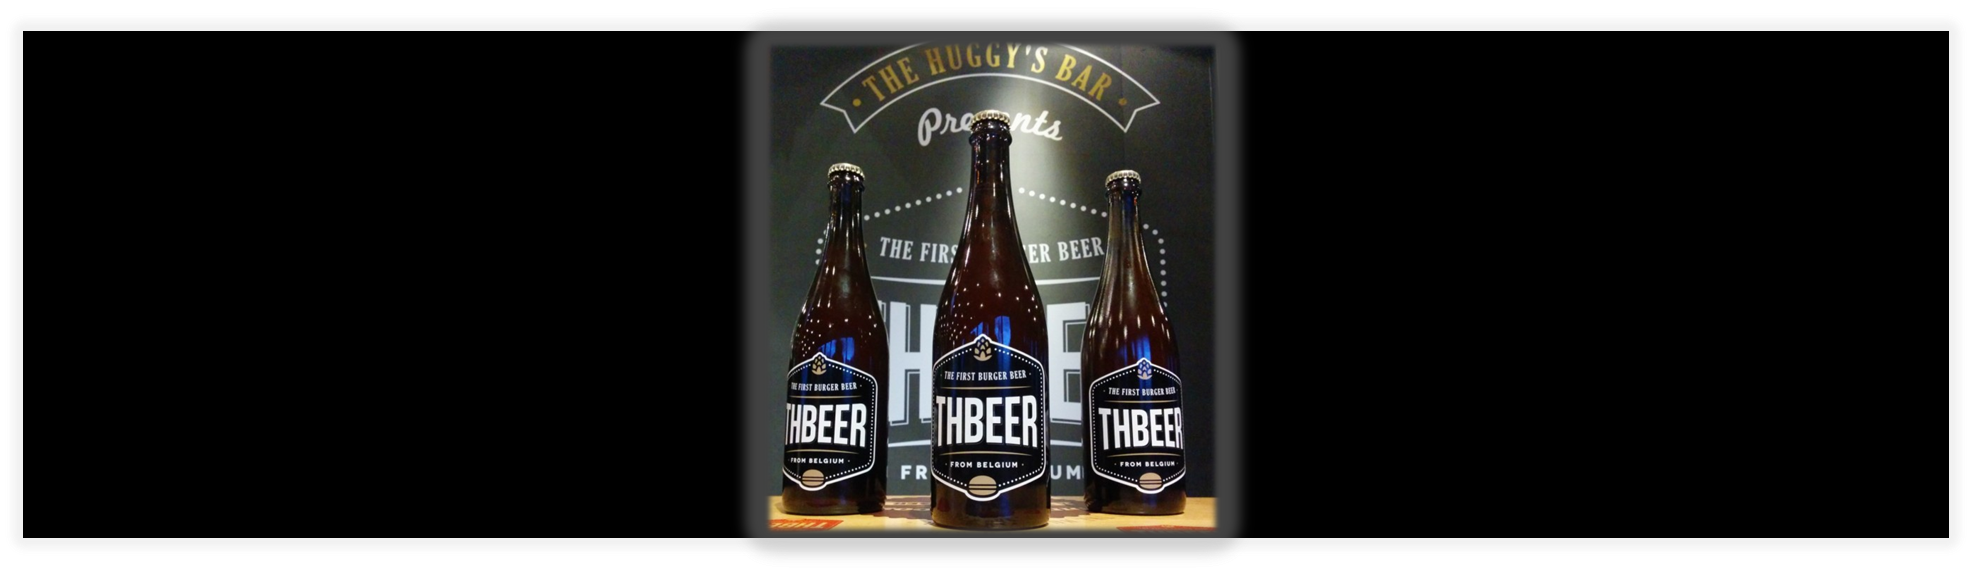 ***CONCOURS THBEER***